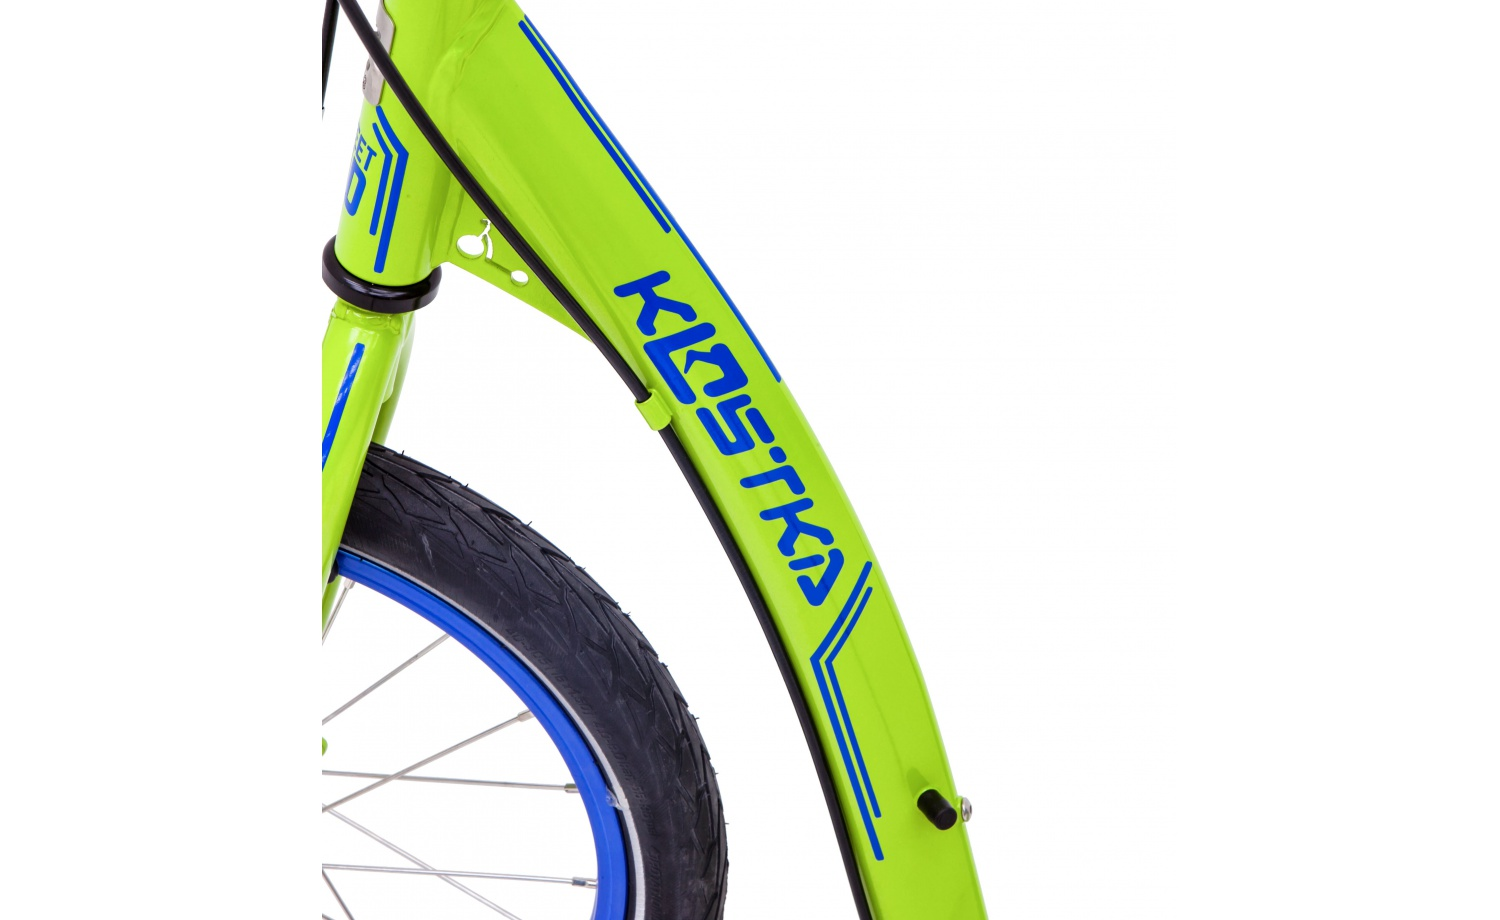 Footbike KOSTKA STREET FUN KID (G5)